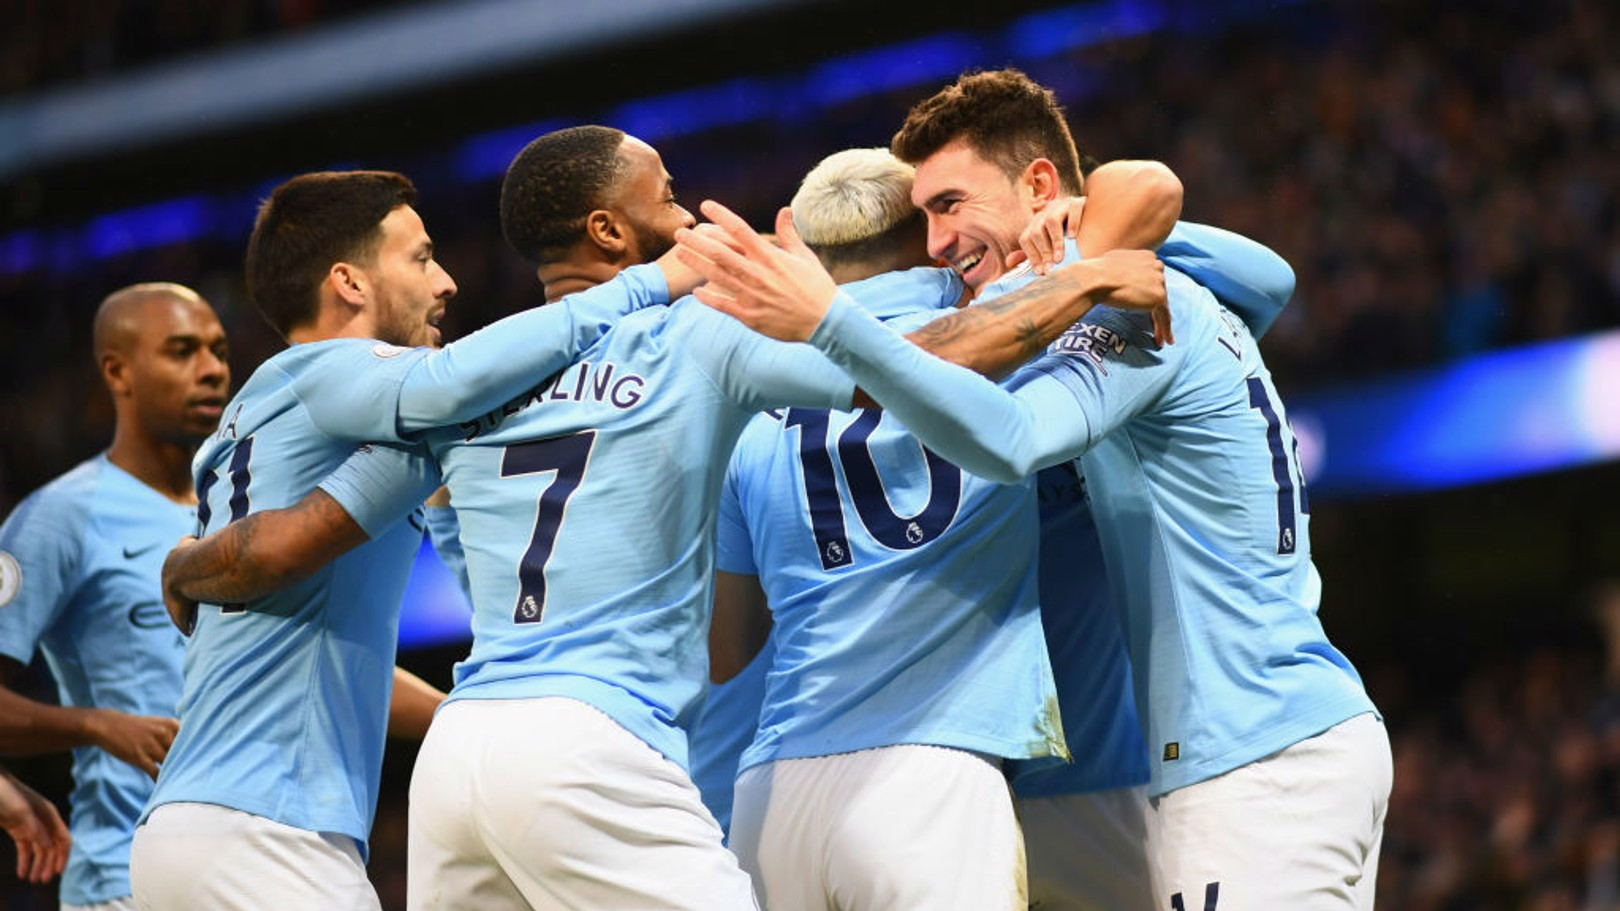 HALF WAY THERE: City celebrate 2-1 lead.